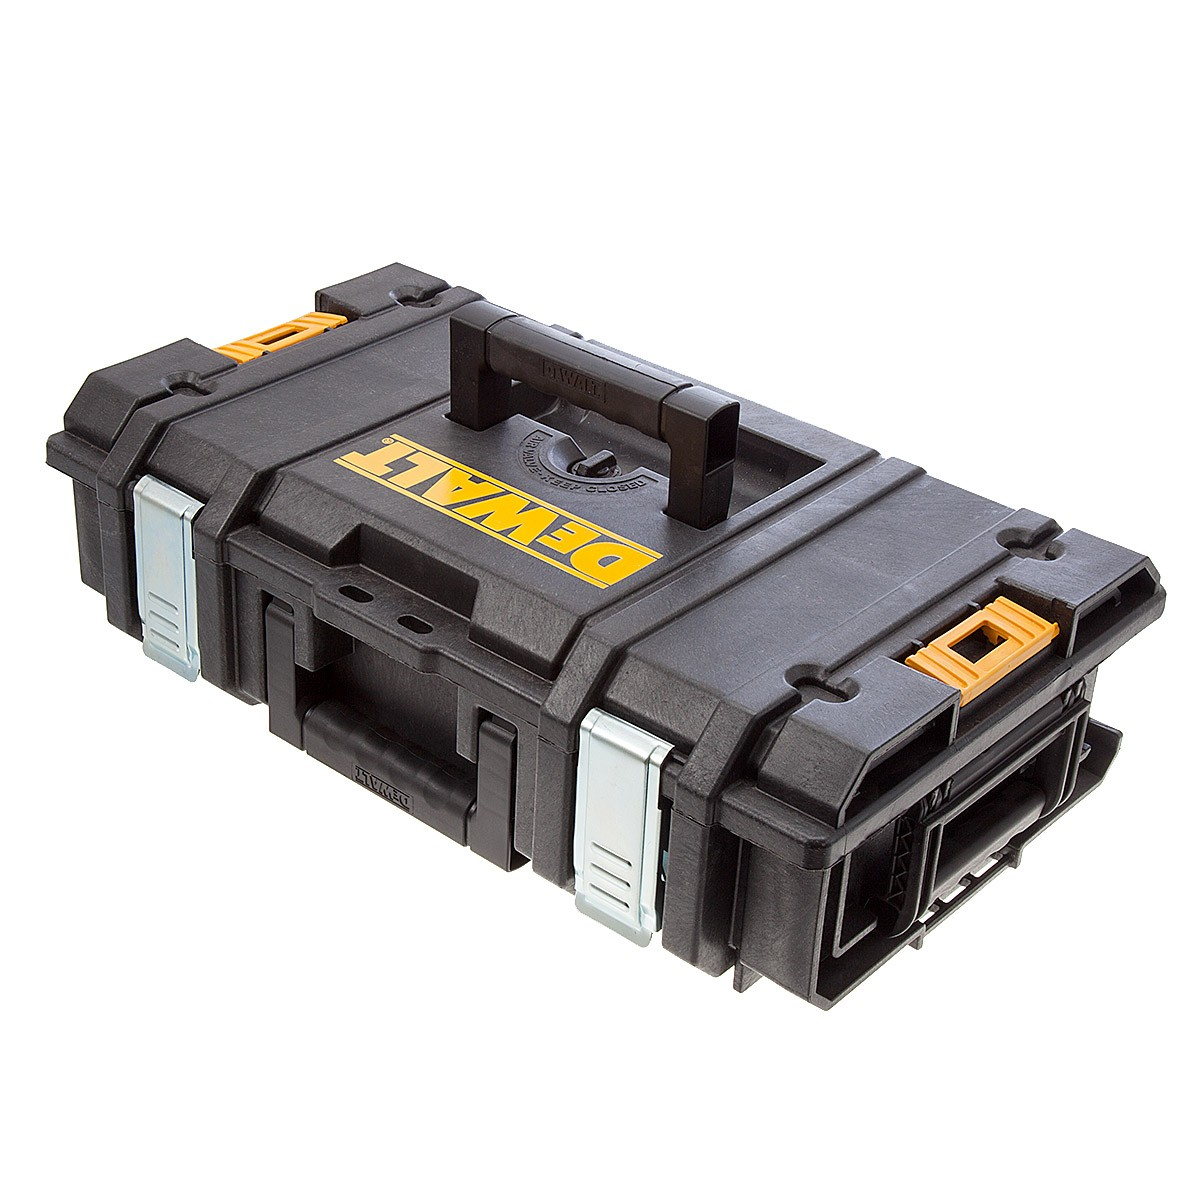 DeWalt DS150 XR TOUGHSYSTEM Kit Box (Moulded Inlay - DCK285M2/DCK250M2)